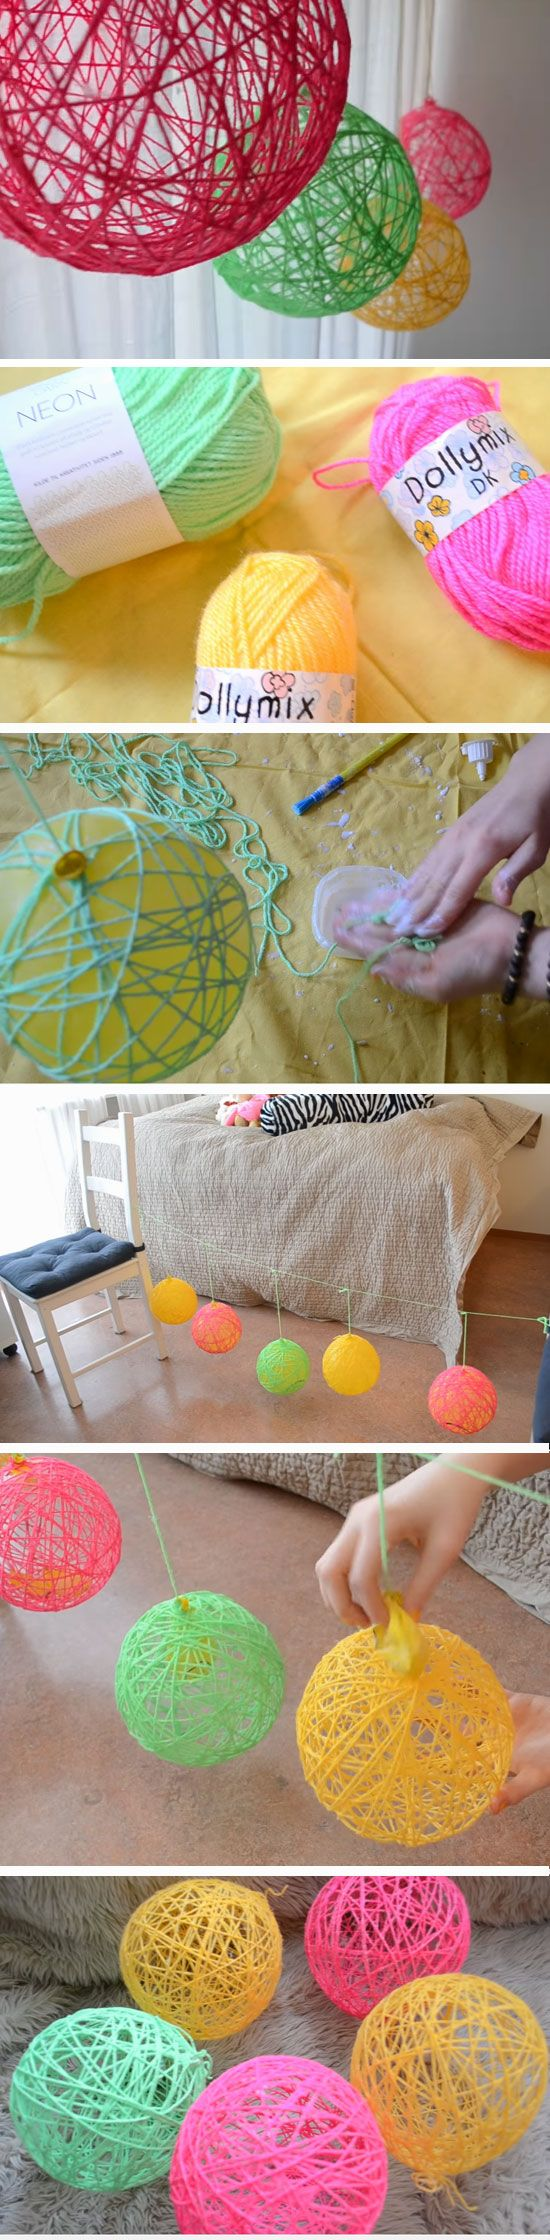 24 Super Easy DIY Spring Room Decor Ideas Summer crafts Room